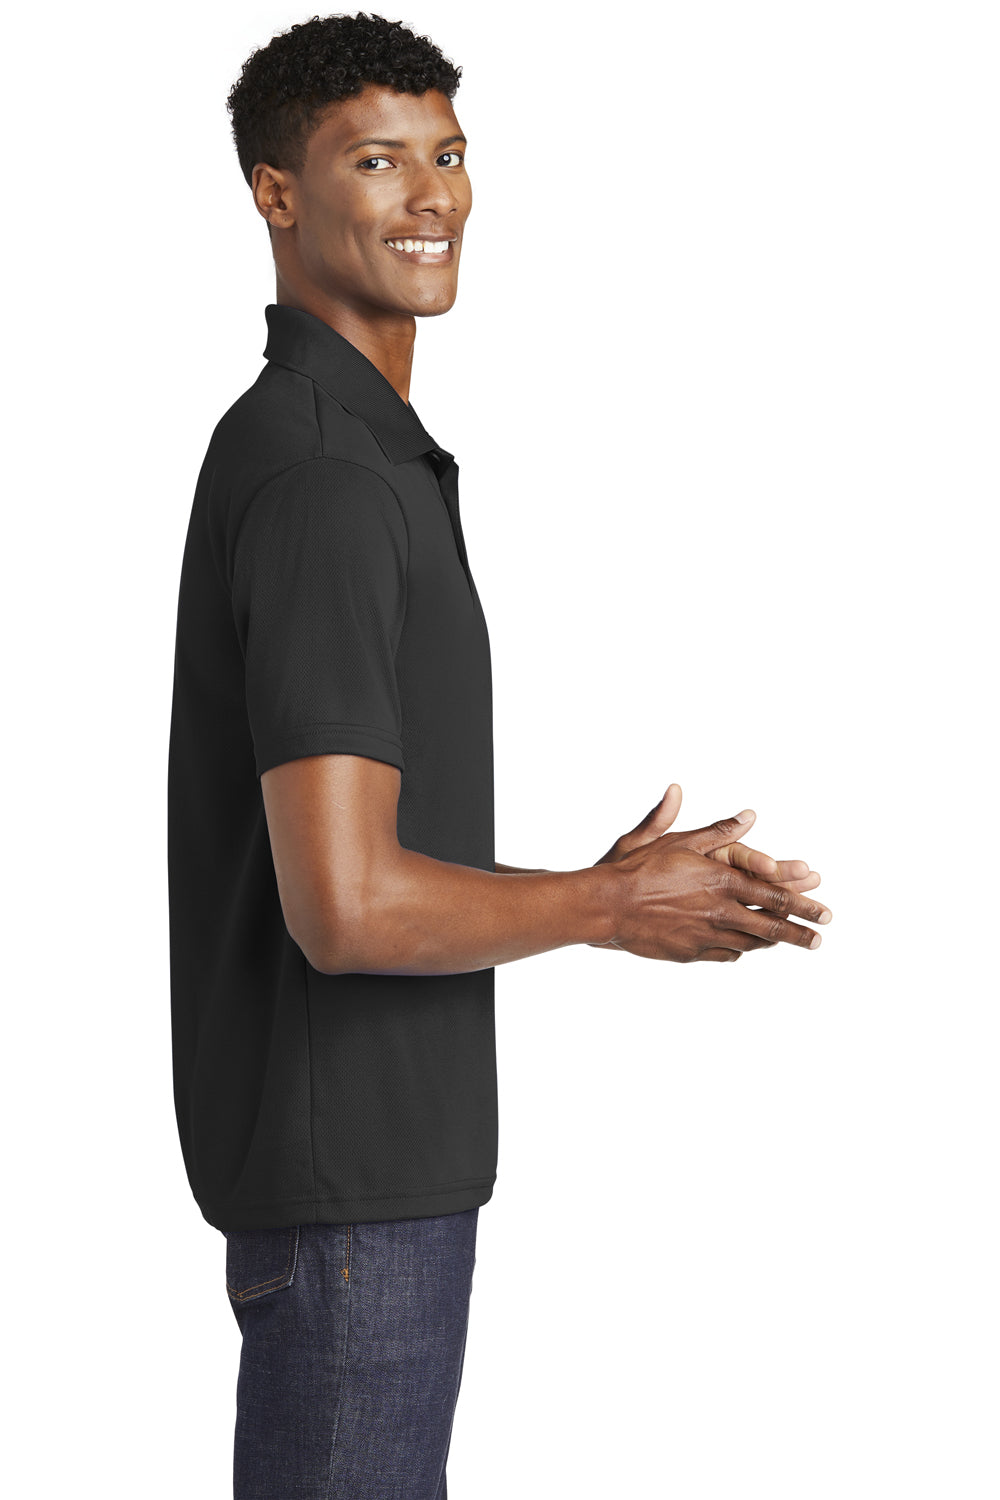 Sport-Tek ST640 Mens RacerMesh Moisture Wicking Short Sleeve Polo Shirt Black Side